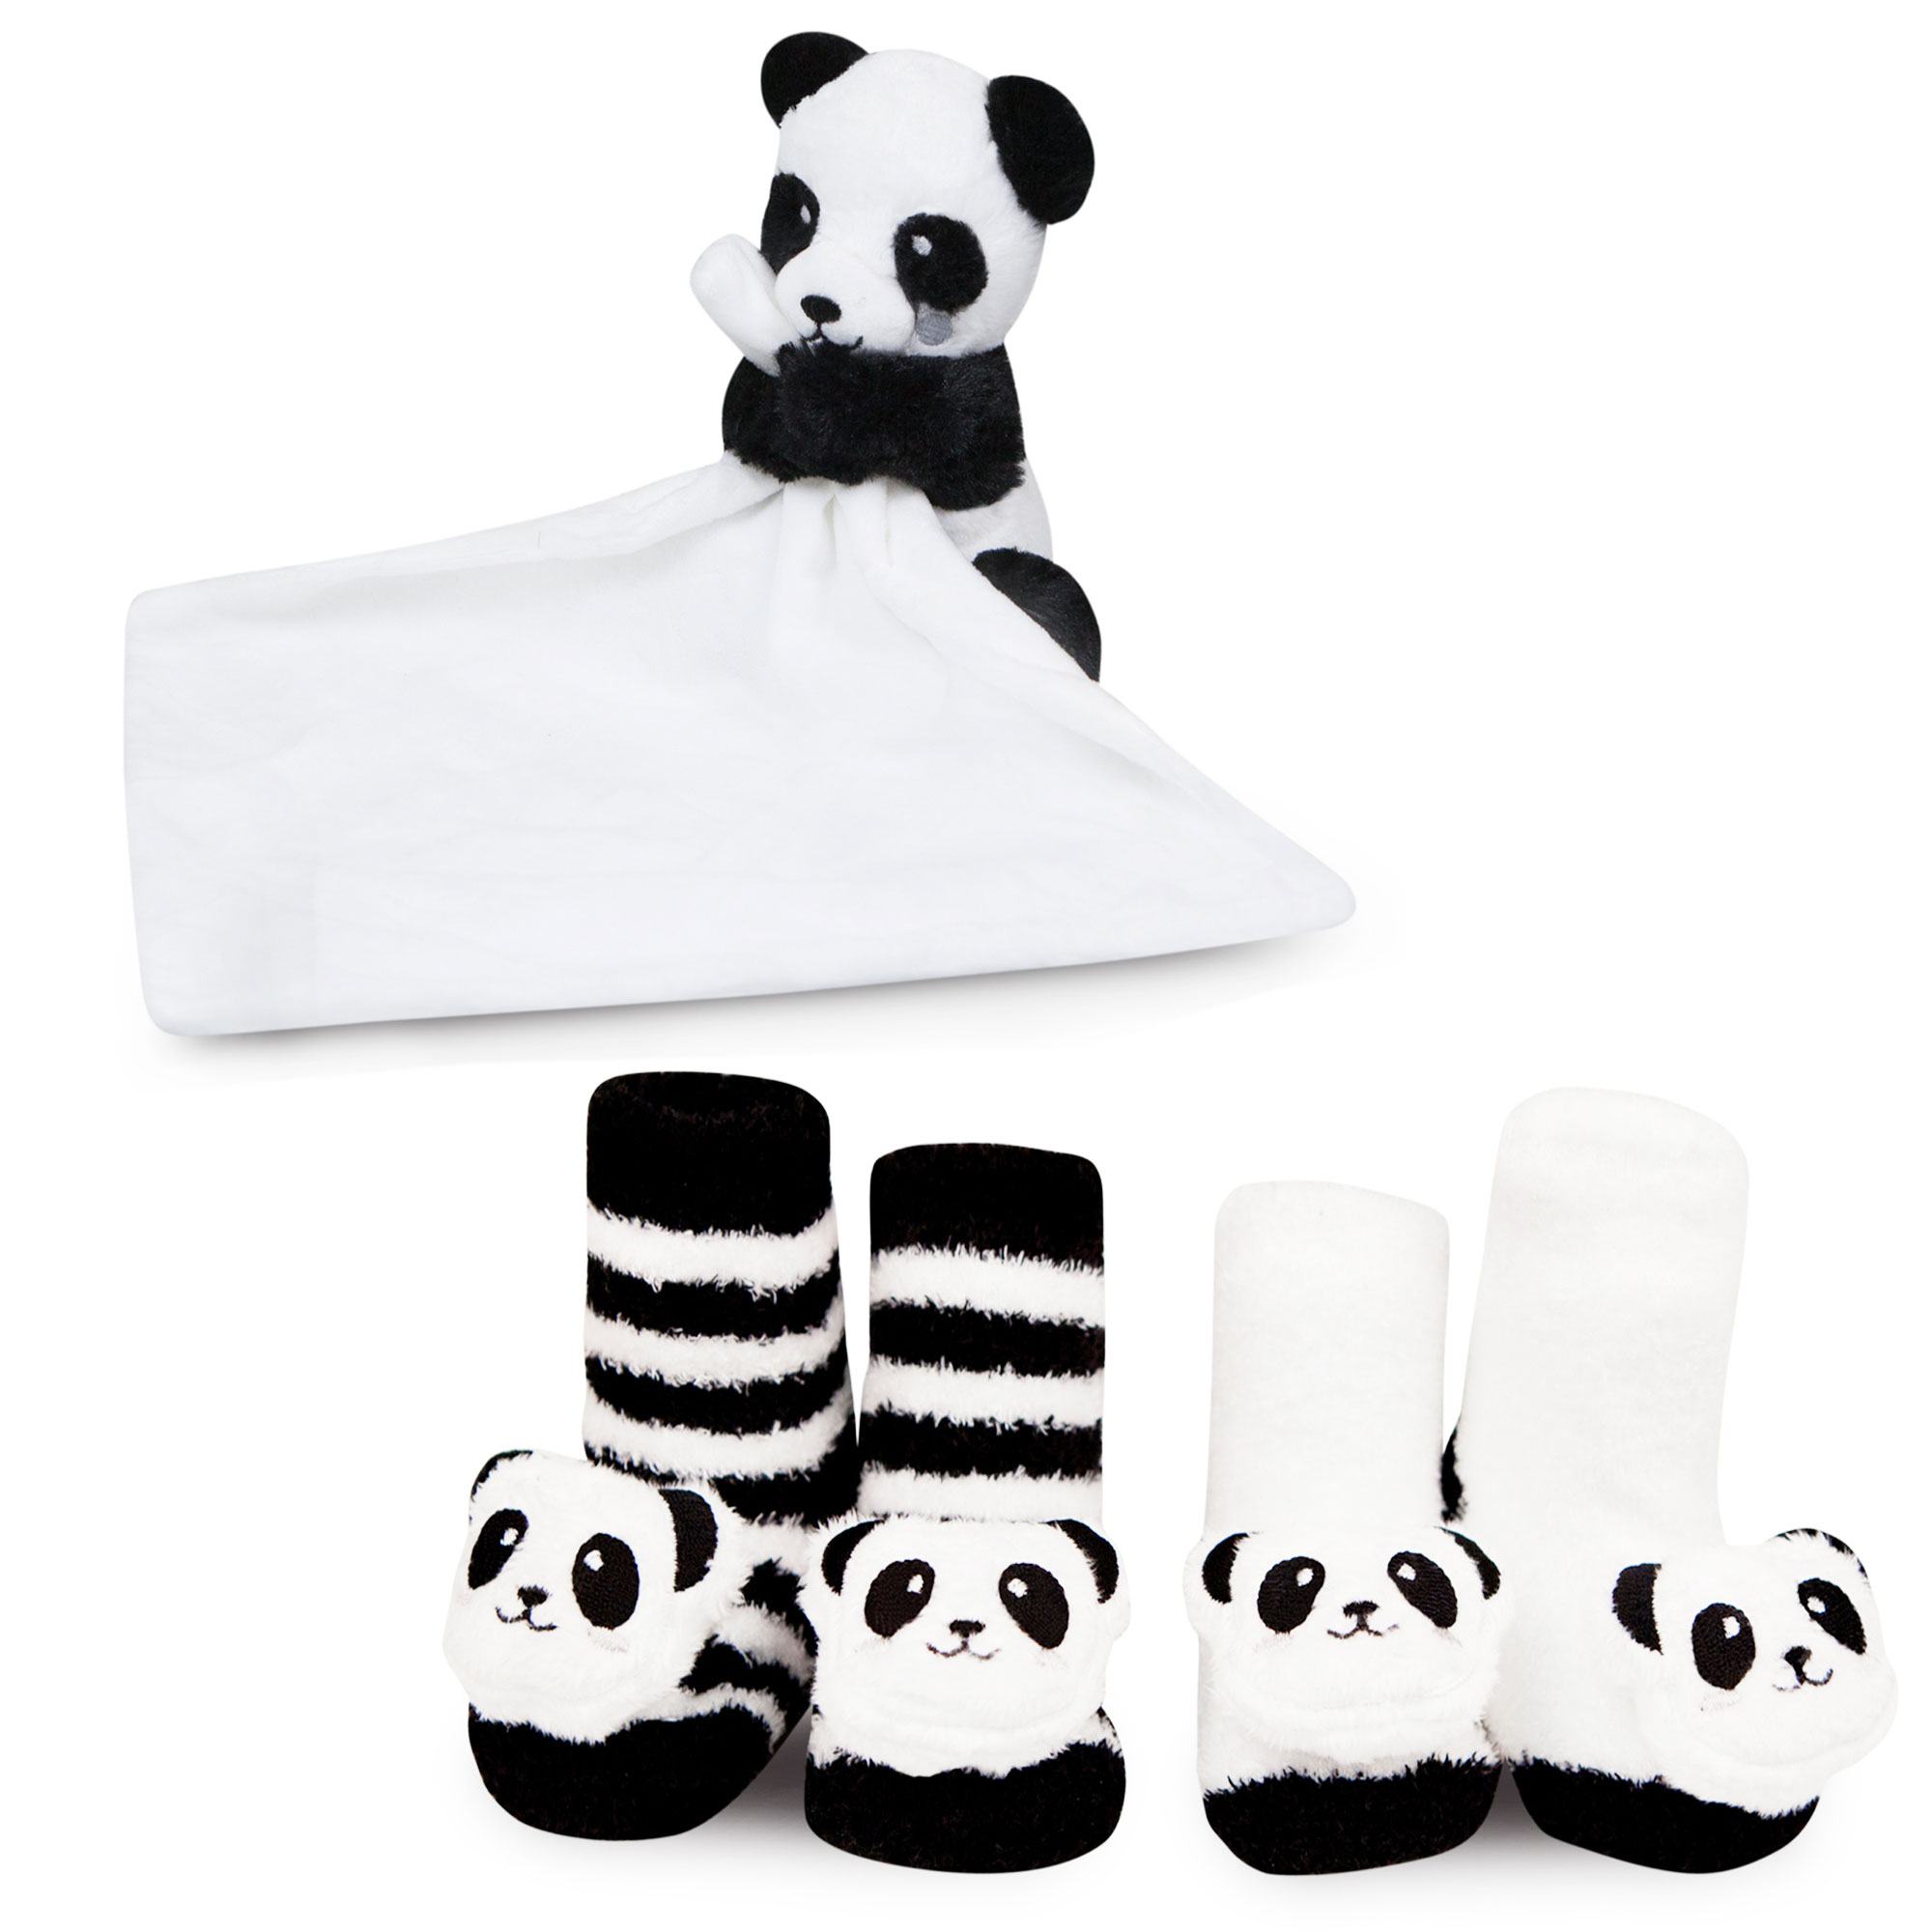 Waddle Baby Gift Set Plush Panda Bear Security Blanket and Newborn Rattle Socks by Waddle and Friends